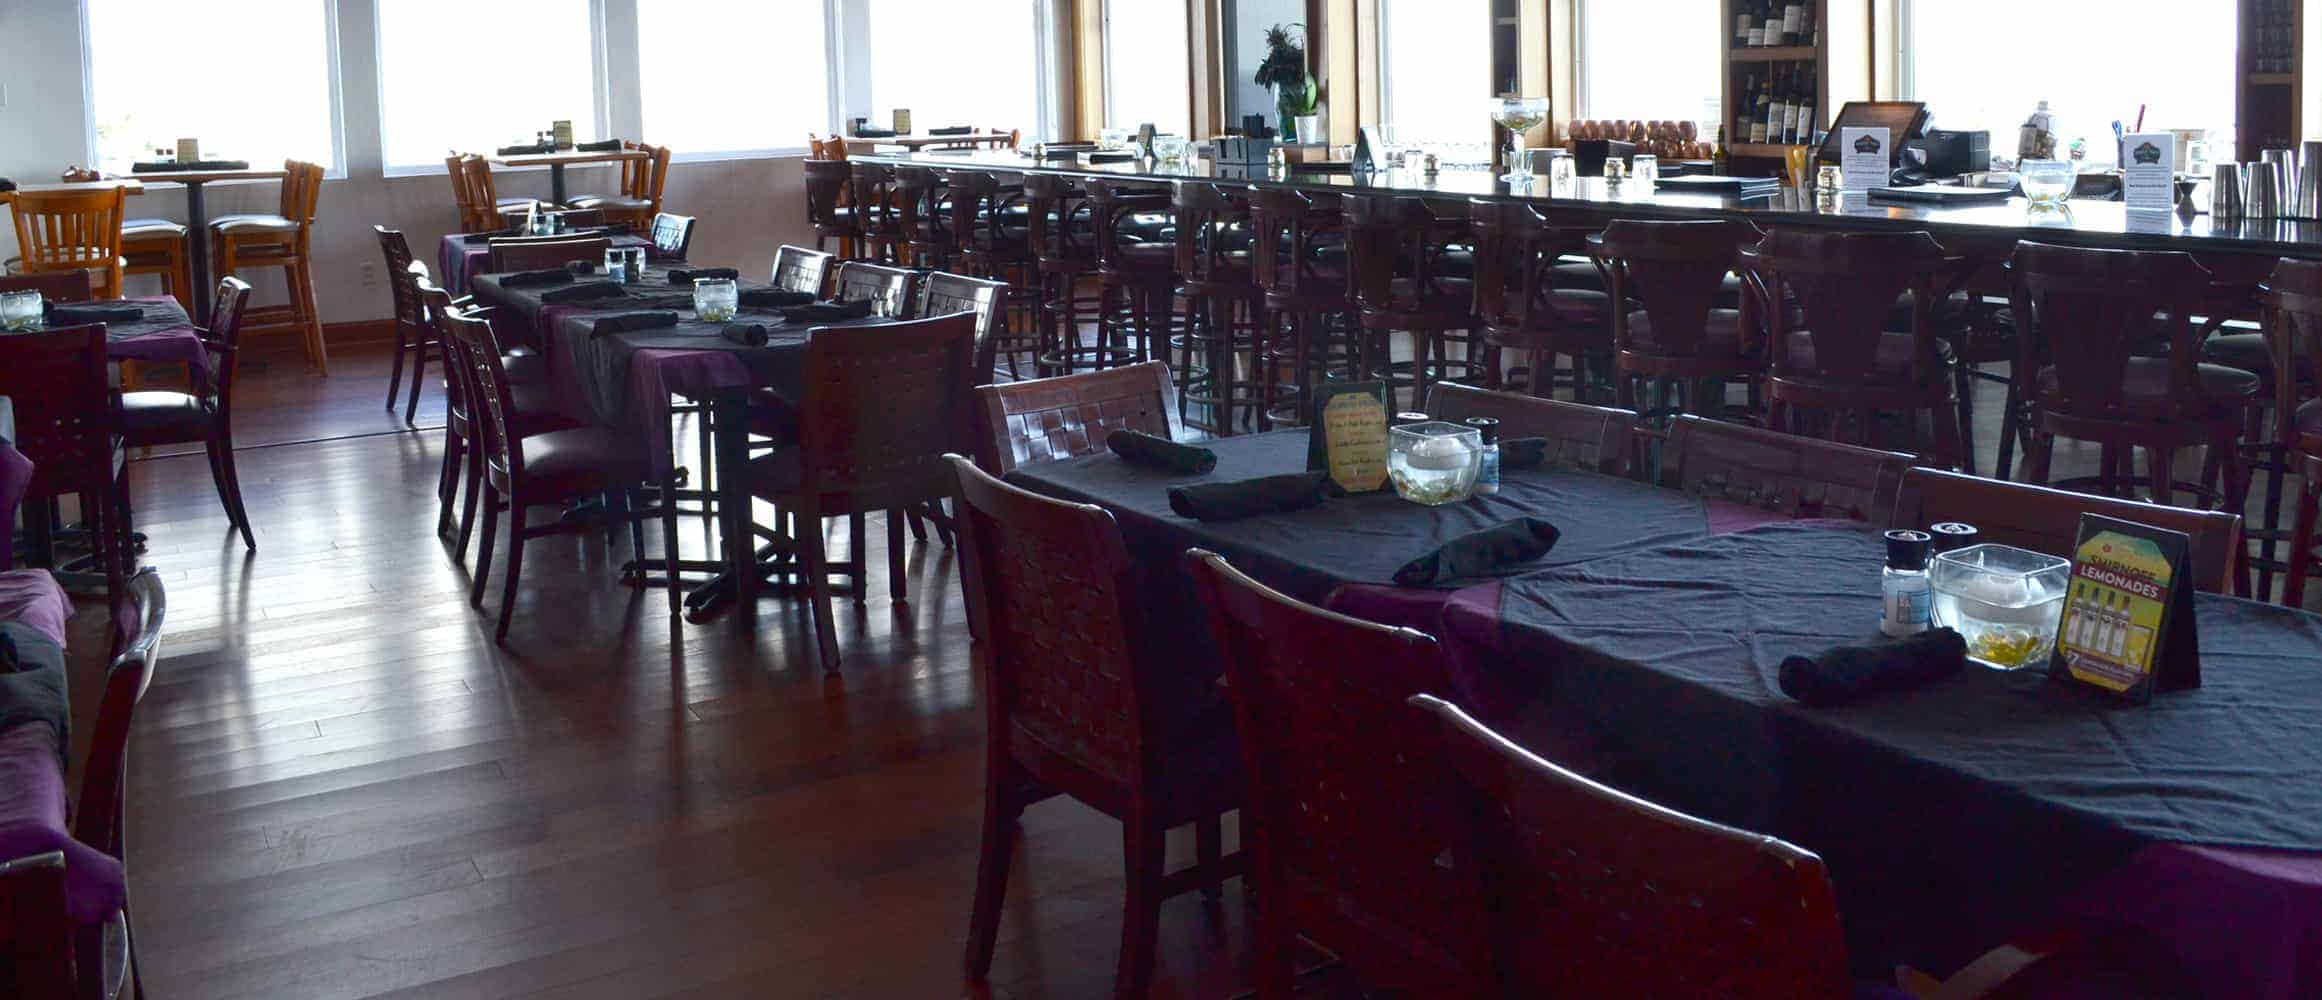 Island View Restaurant seating